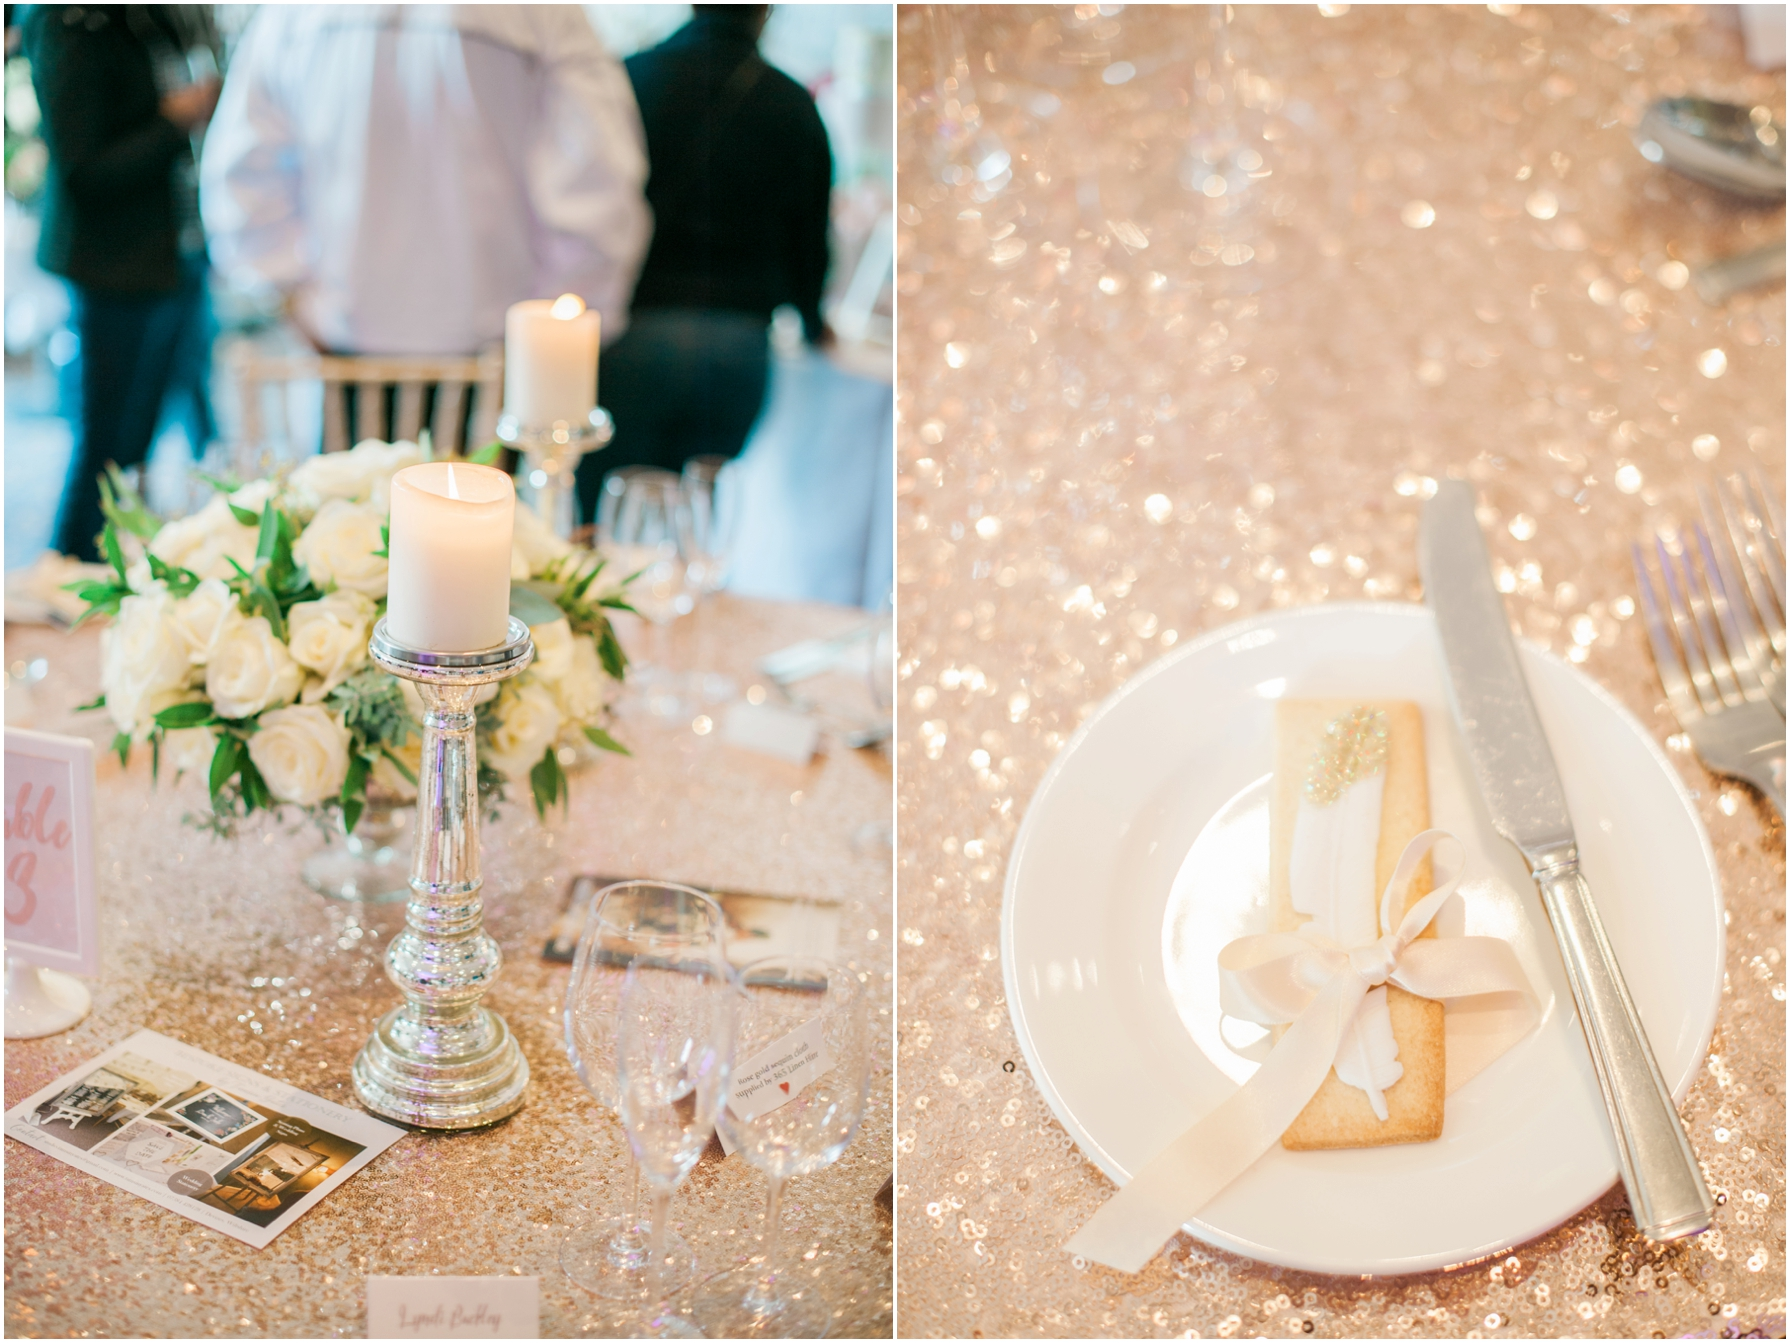 white and gold themed wedding tables with sparkly table cloth